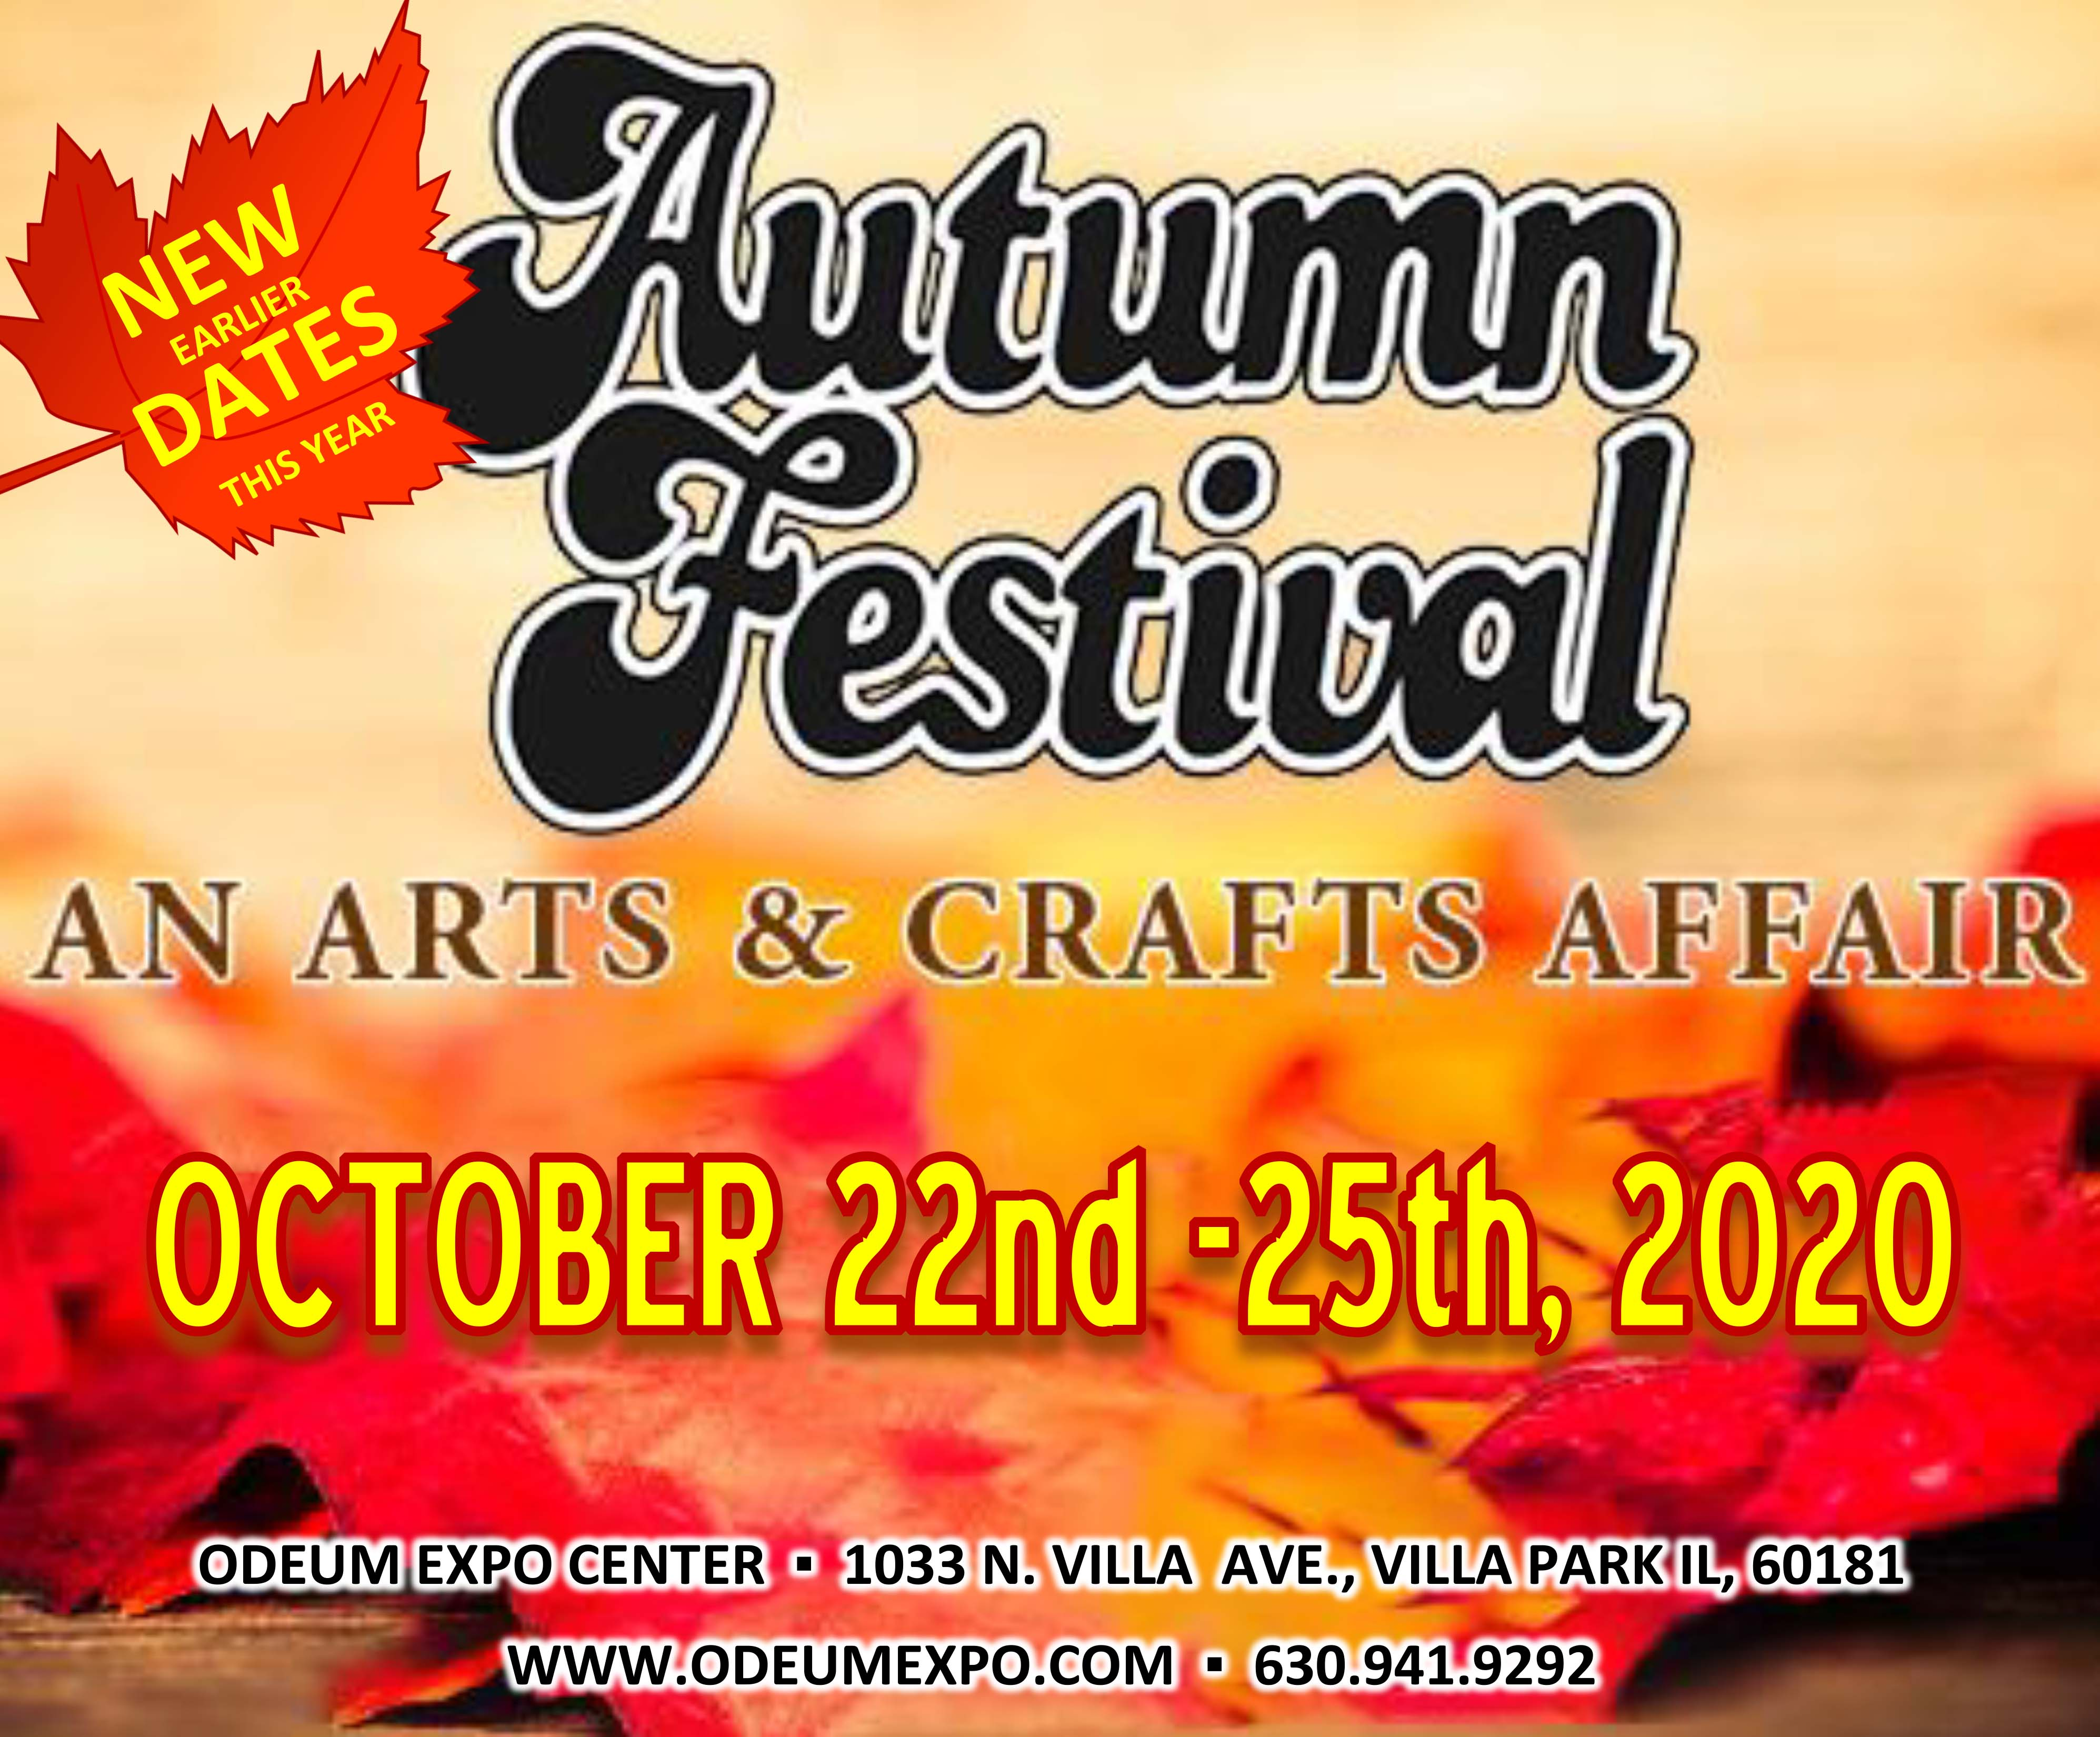 Logo for the annual Autumn Arts & Crafts Festival at the Odeum Expoe Center in Villa Park, Illinois arrives earlier than usual on October 22-25, 2020